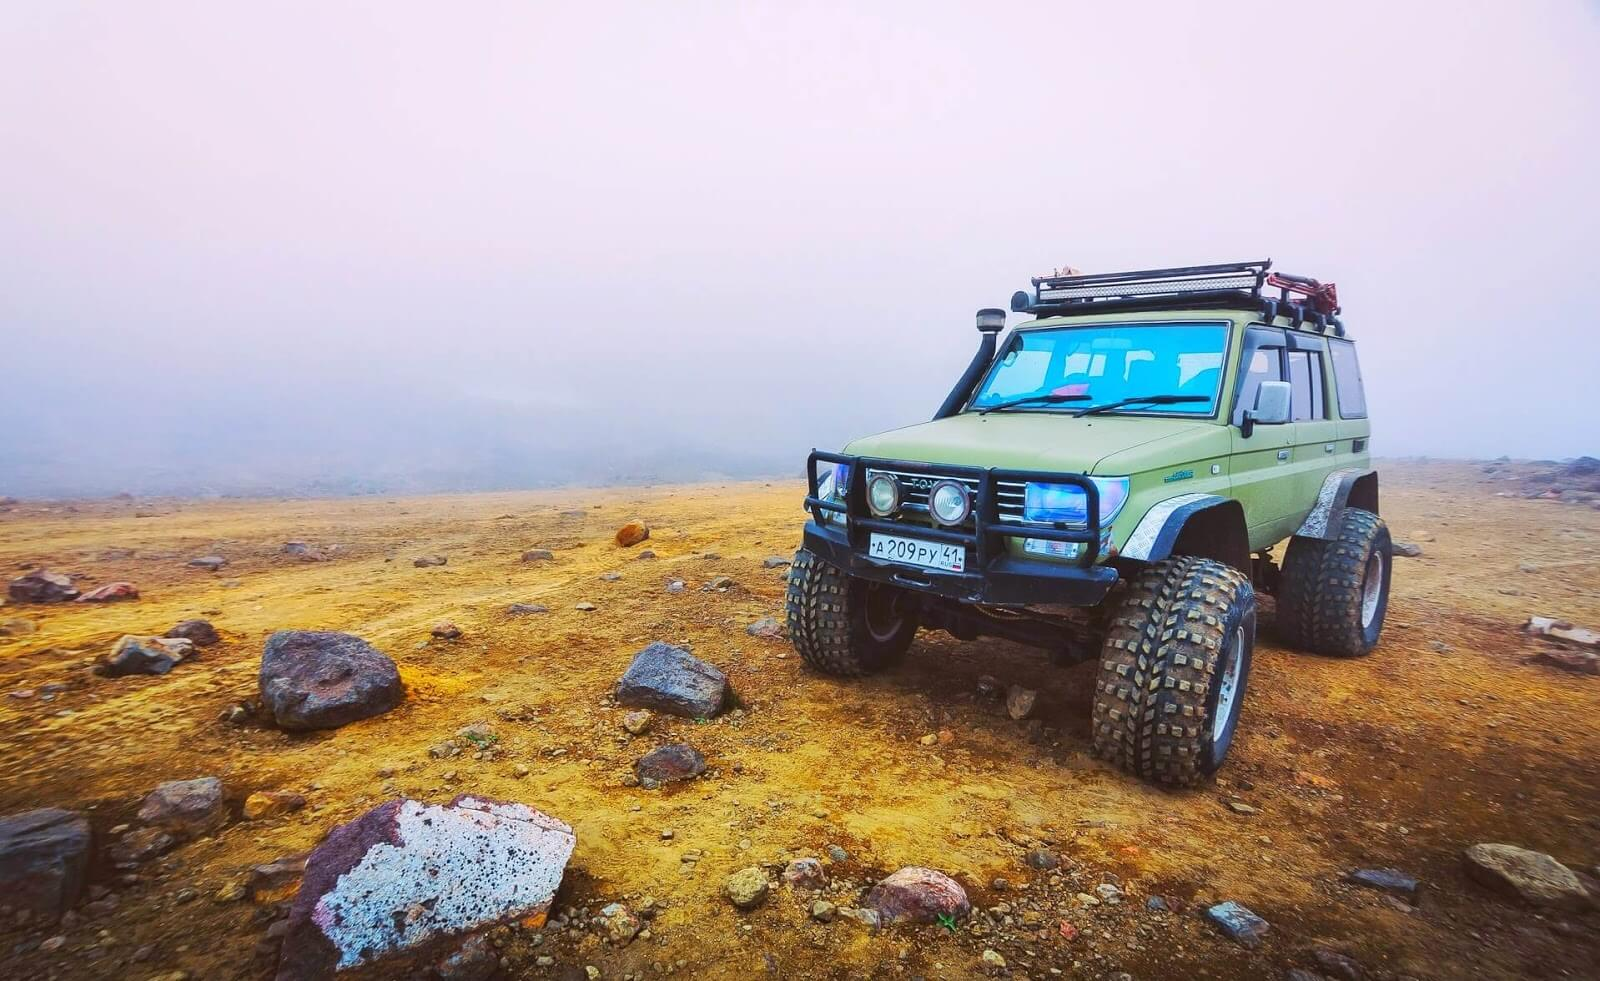 How to pick a line when off-roading?